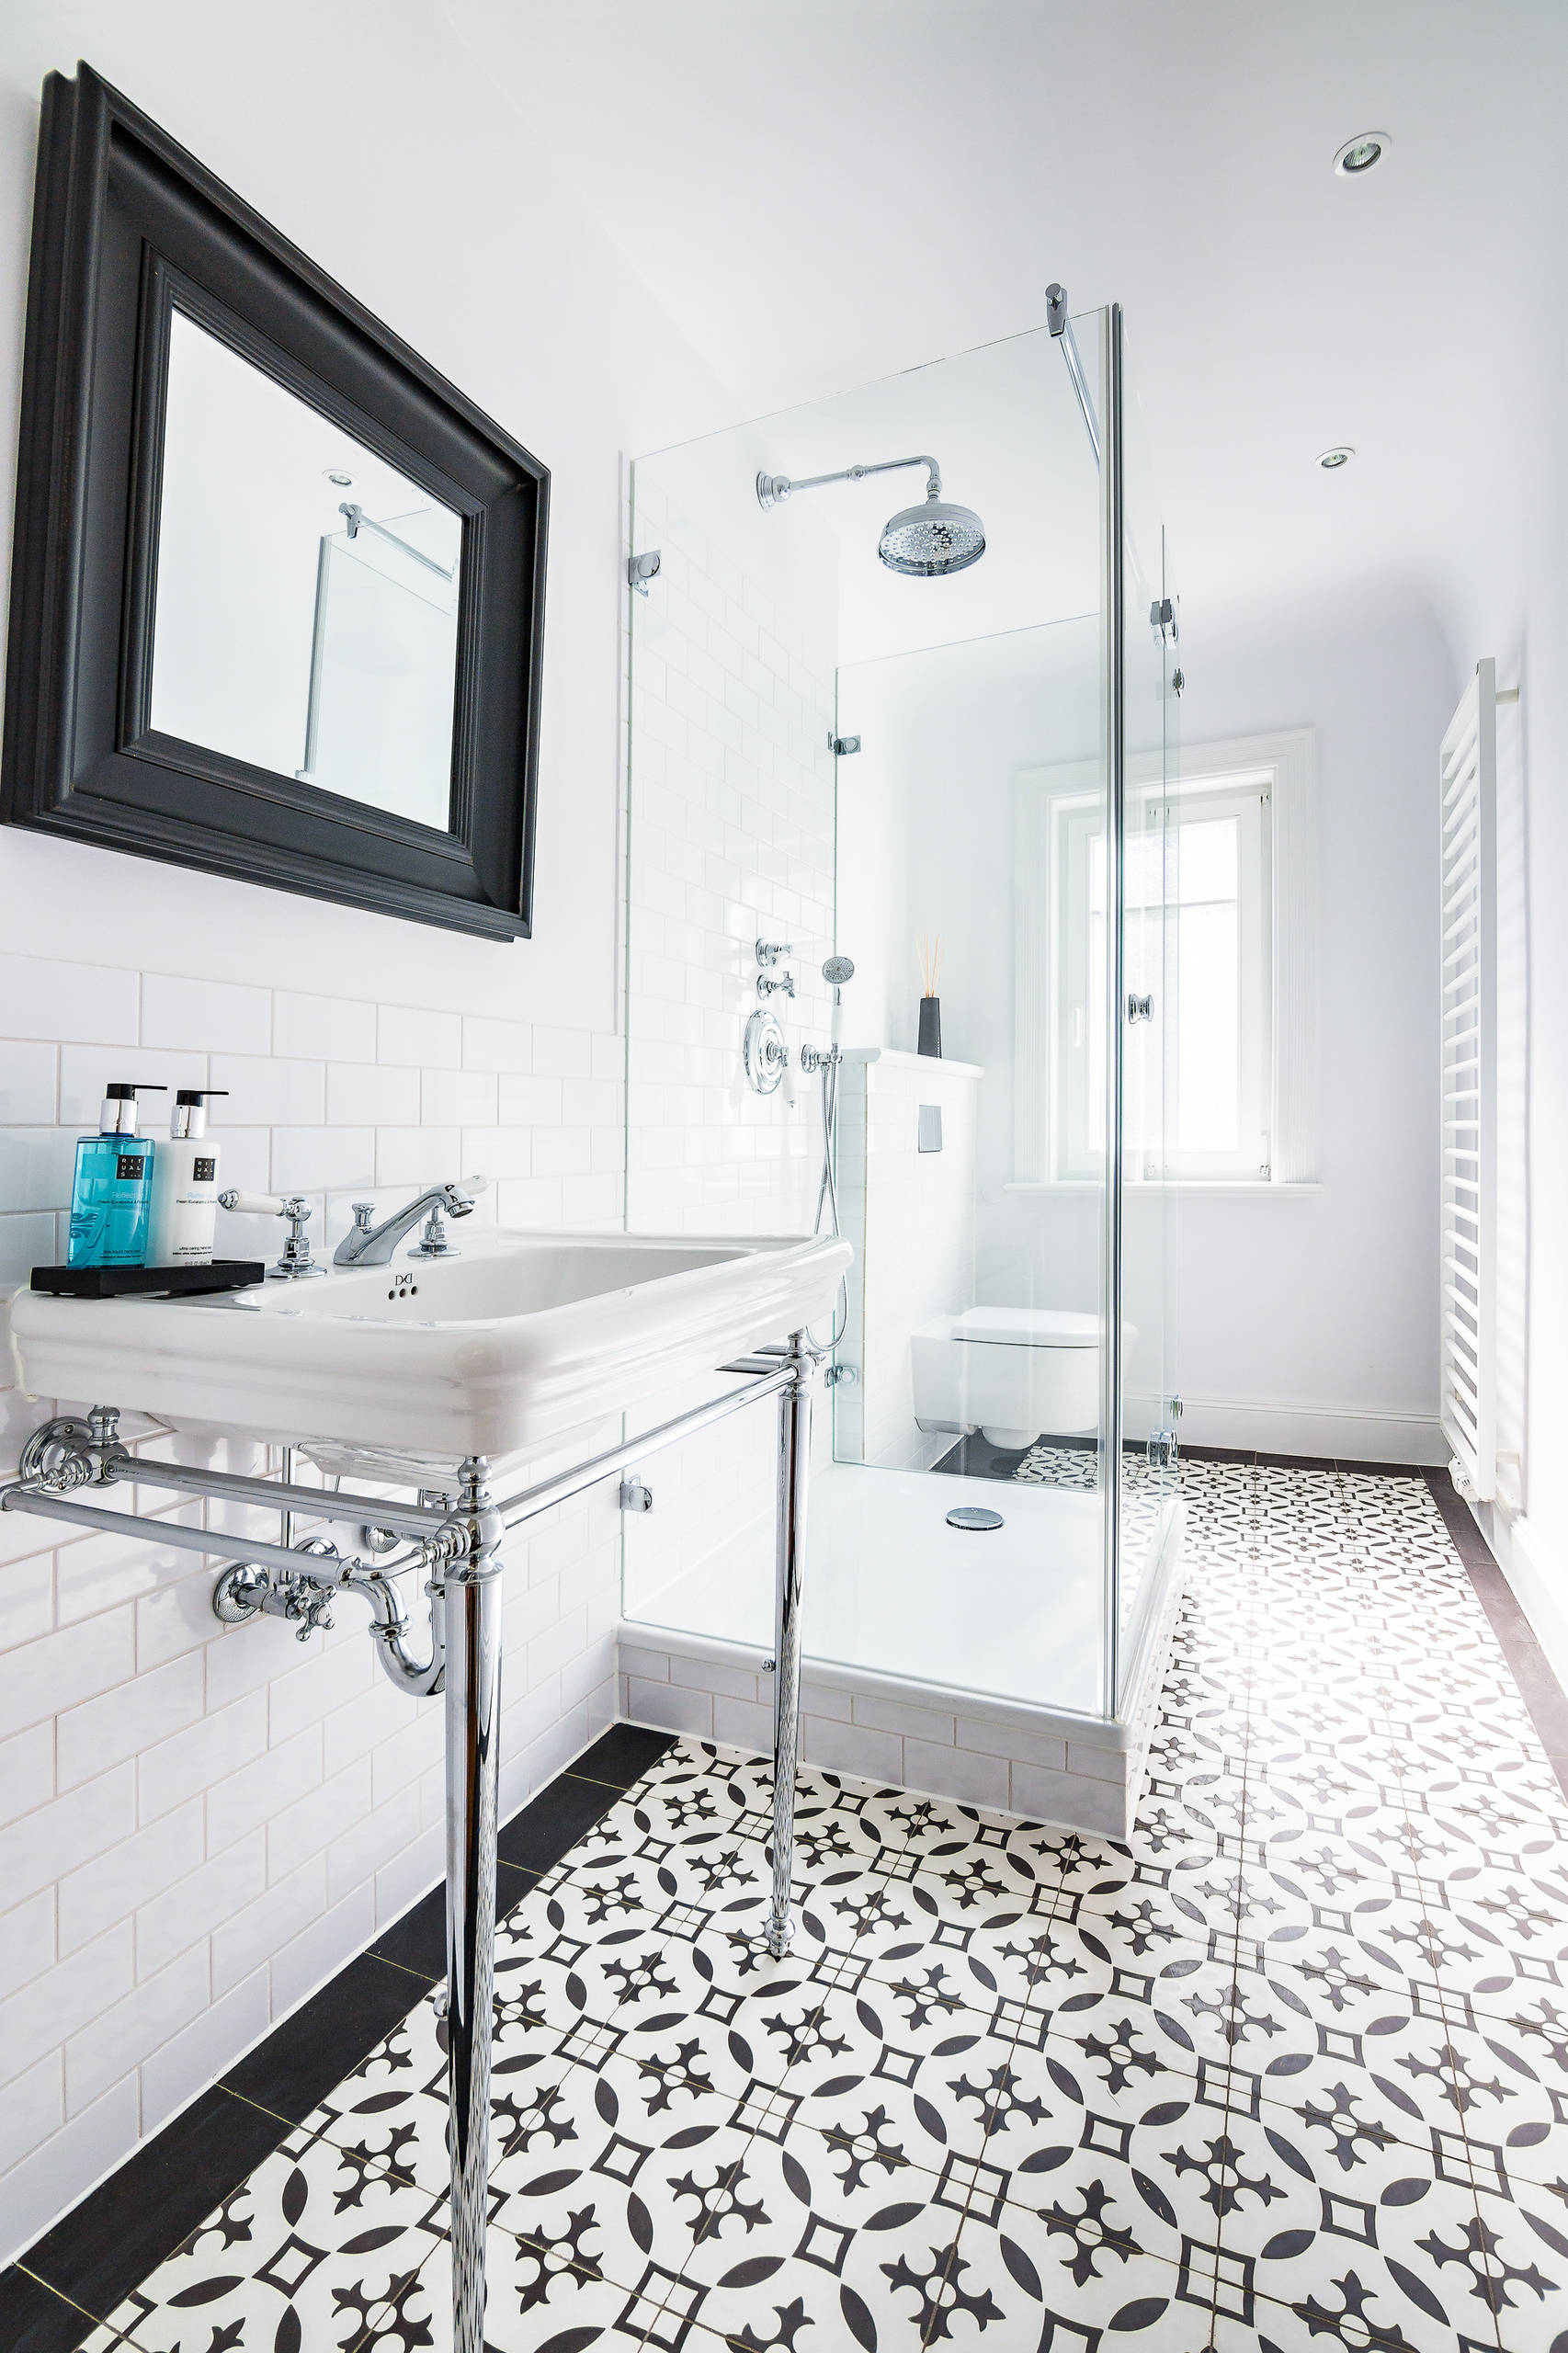 75 Beautiful Subway Tile Bathroom With Stainless Steel Countertops Pictures Ideas January 2021 Houzz